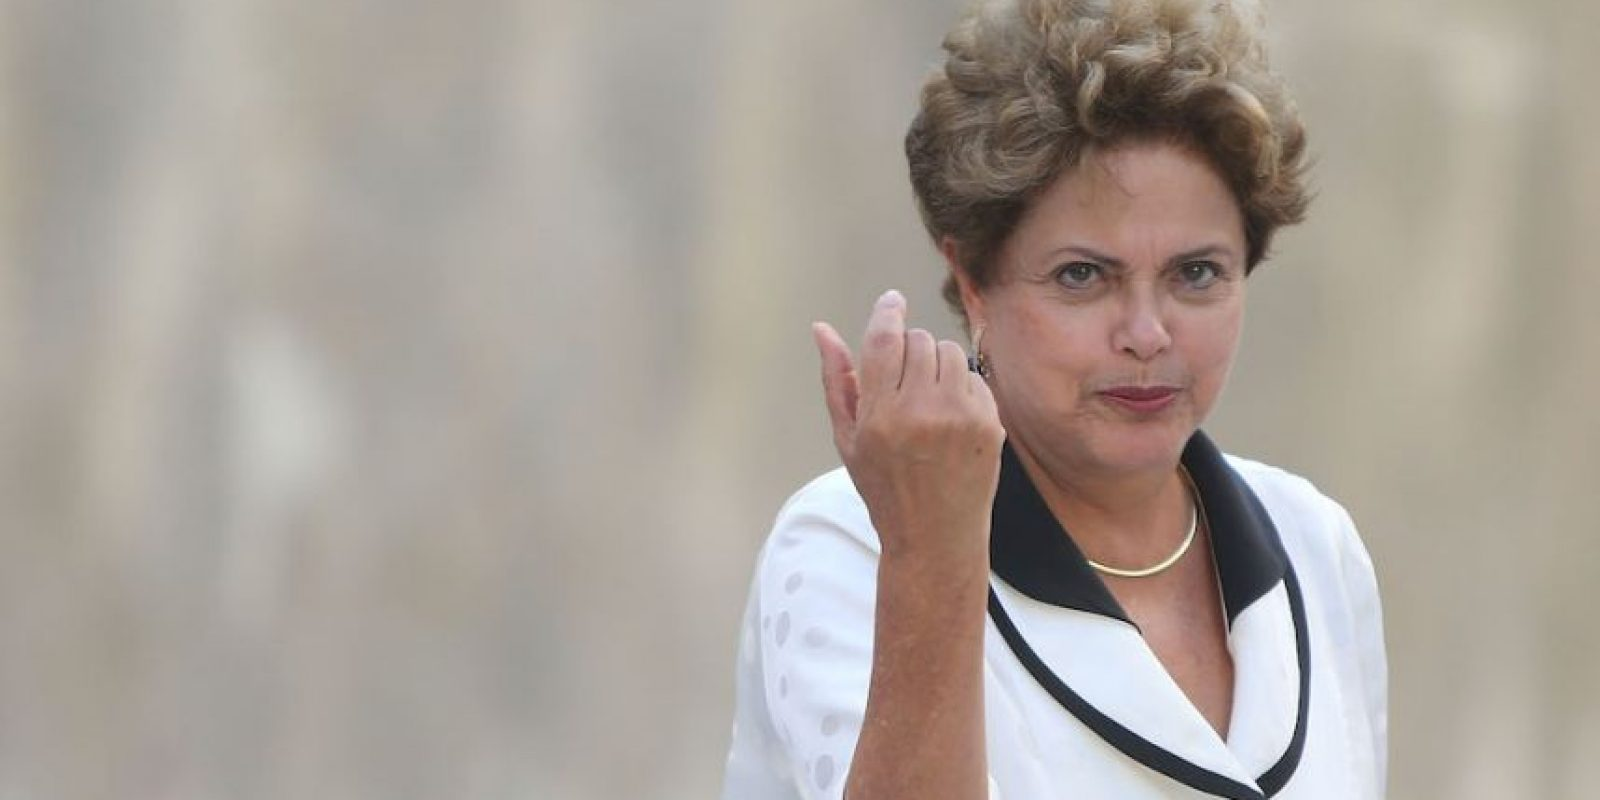 Brasil: Dilma Vana Rousseff (@dilmabr). Foto: Getty Images